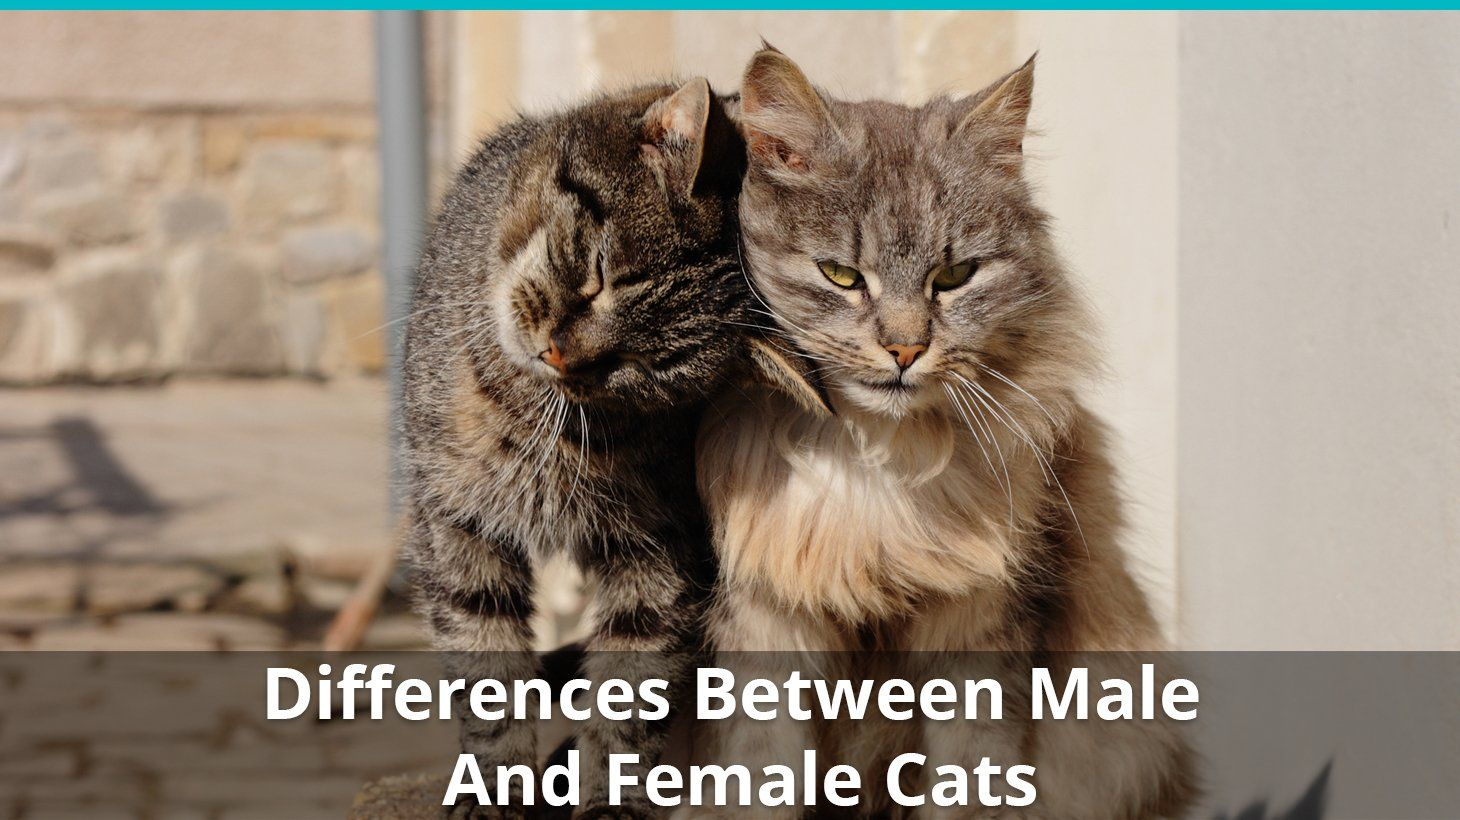 The Most Obvious Difference Between Male And Female Cats Is Their Gender They Are Poles Apart In Terms Of Reproductive Organs And Obviously In 2020 Cats Cat Lady Male